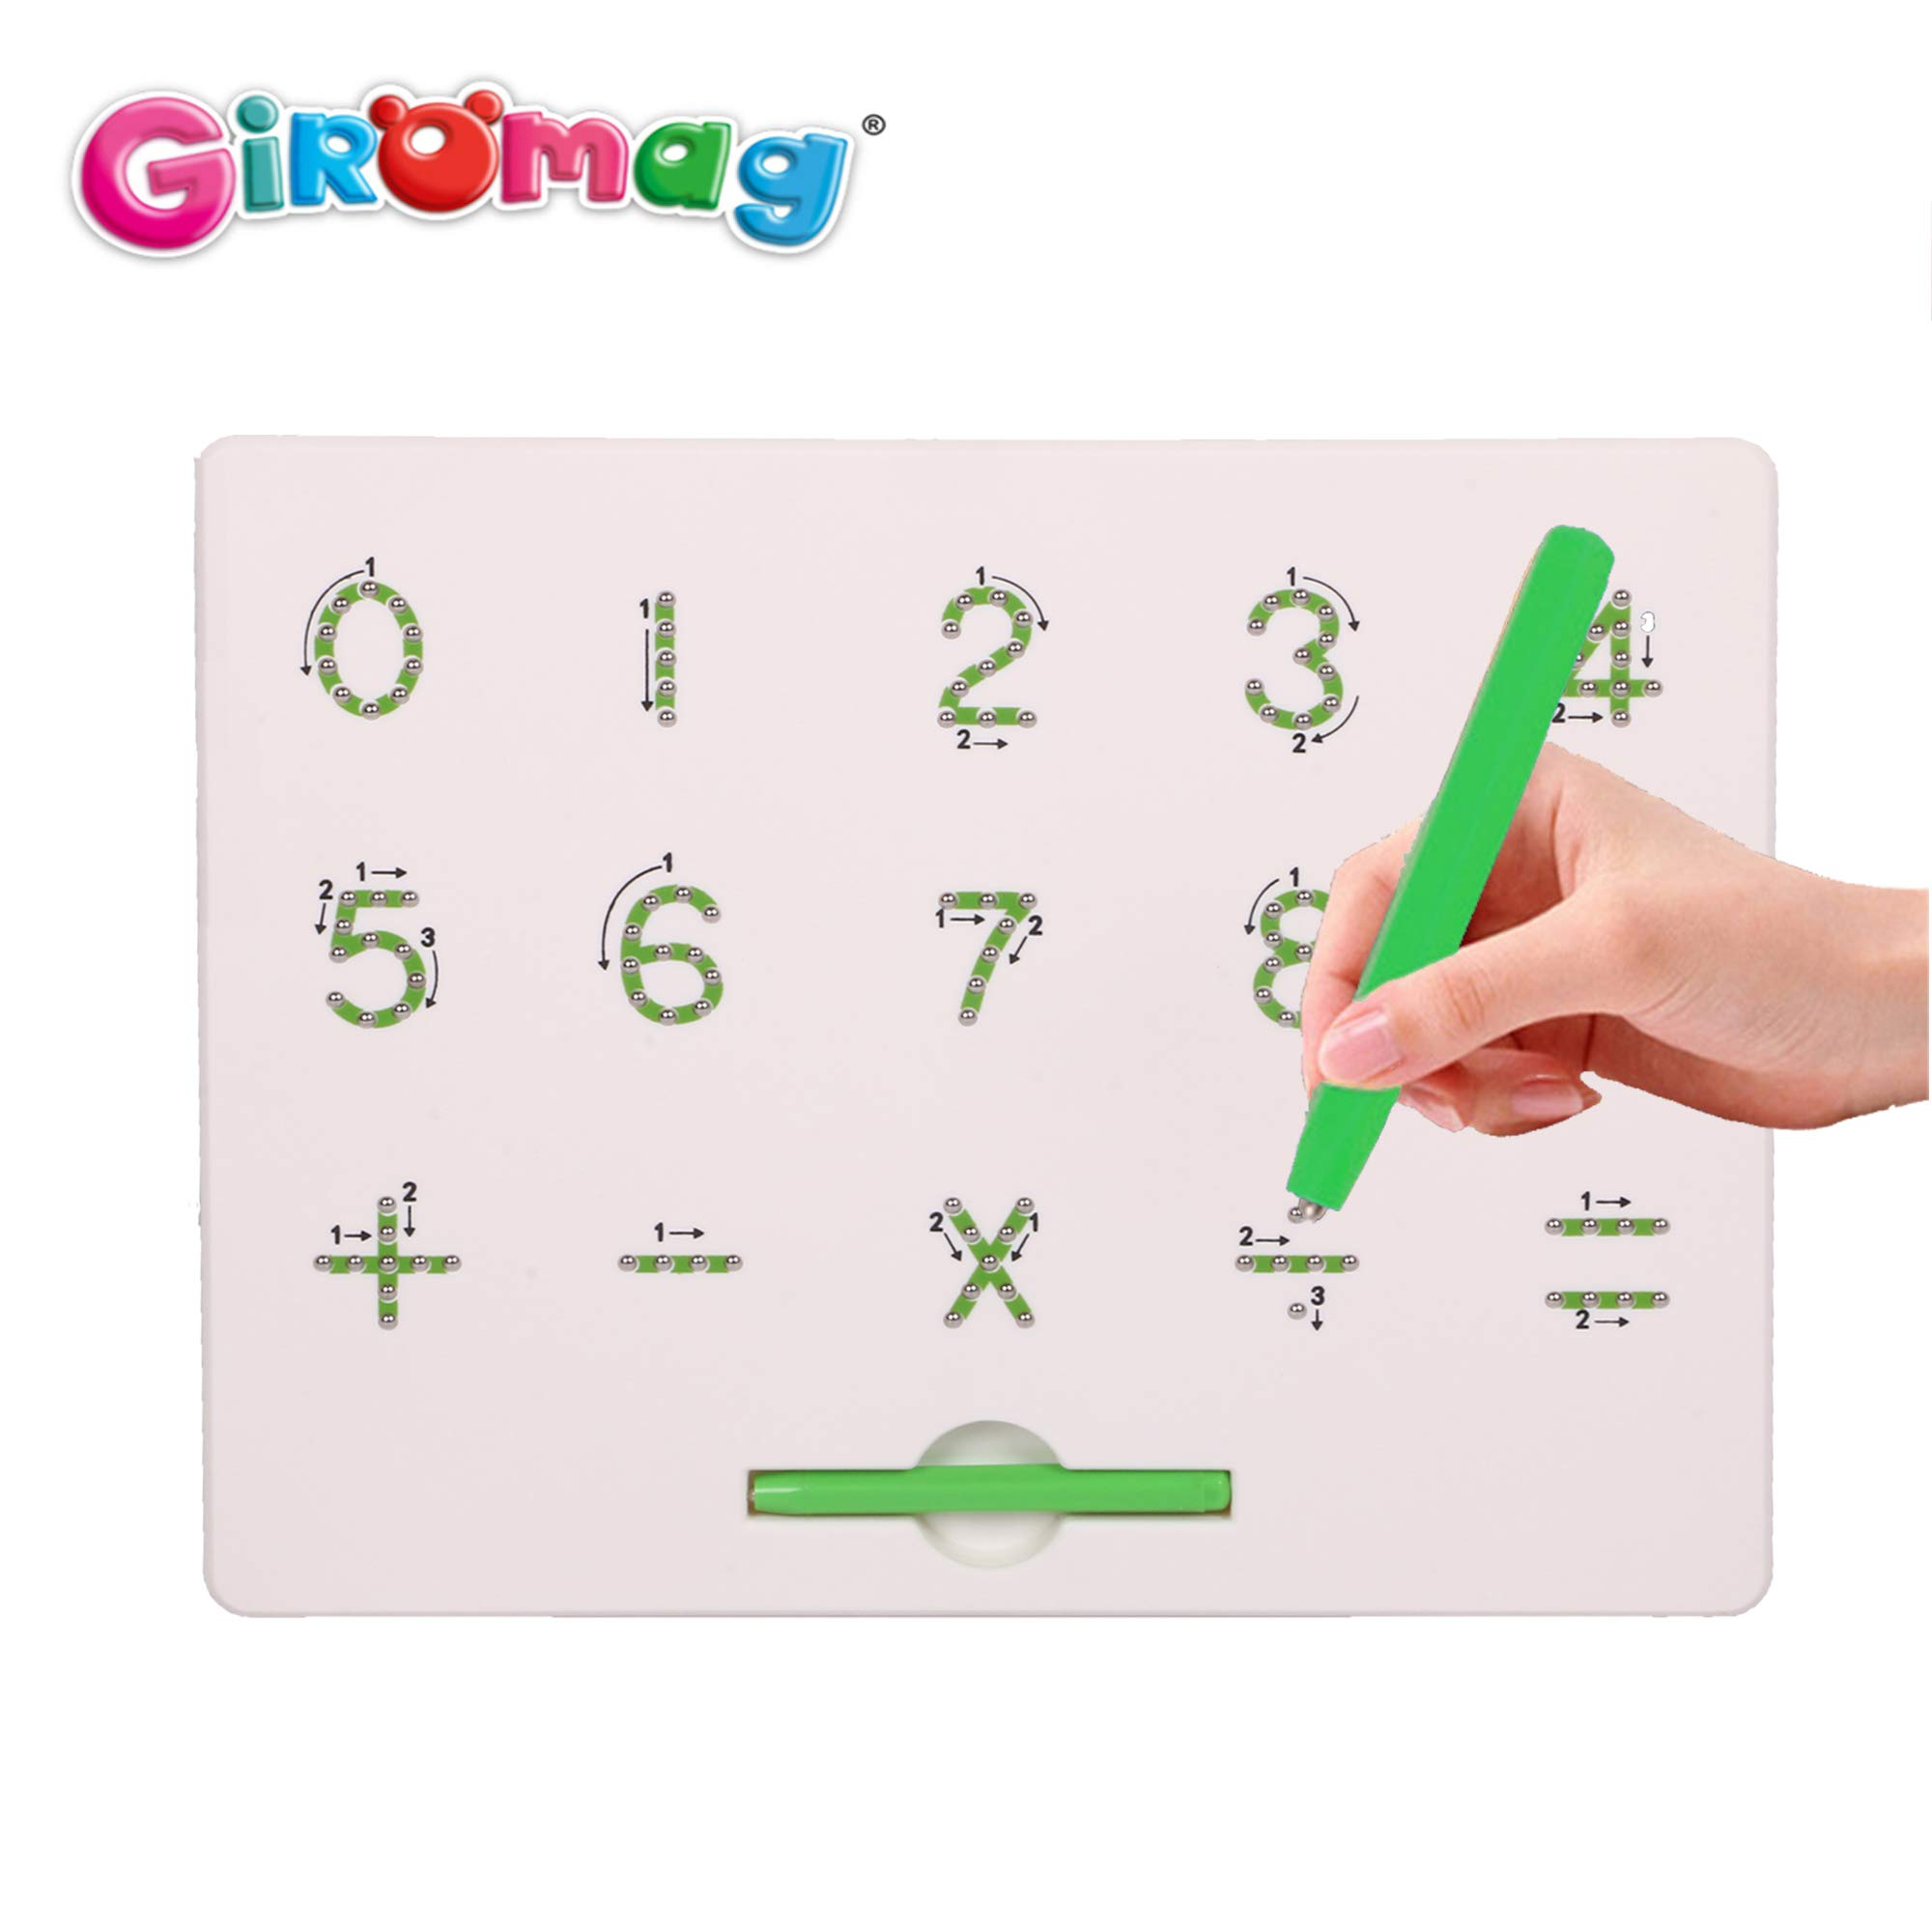 Giromag 0 to 9 Number Magna Tab for Kids Educational Toy Magnetic Balls Board Magnet Tablet(8639N-123)